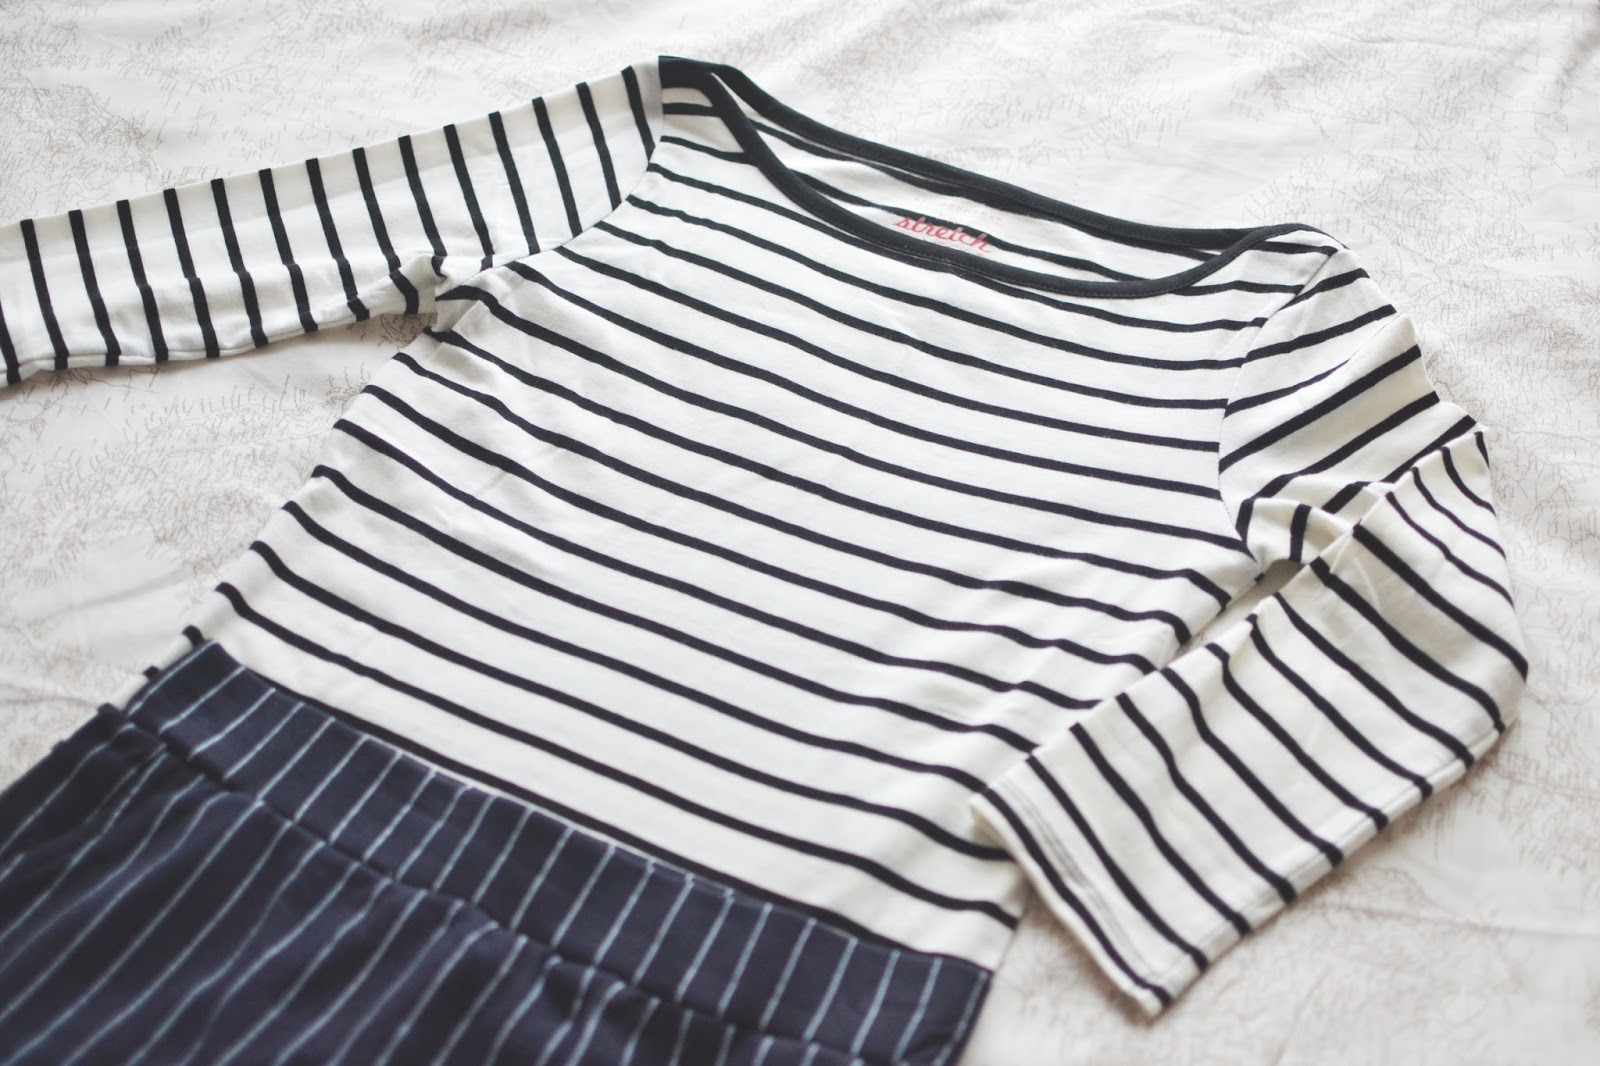 primark haul 2014, primark haul january 2015, stripey top